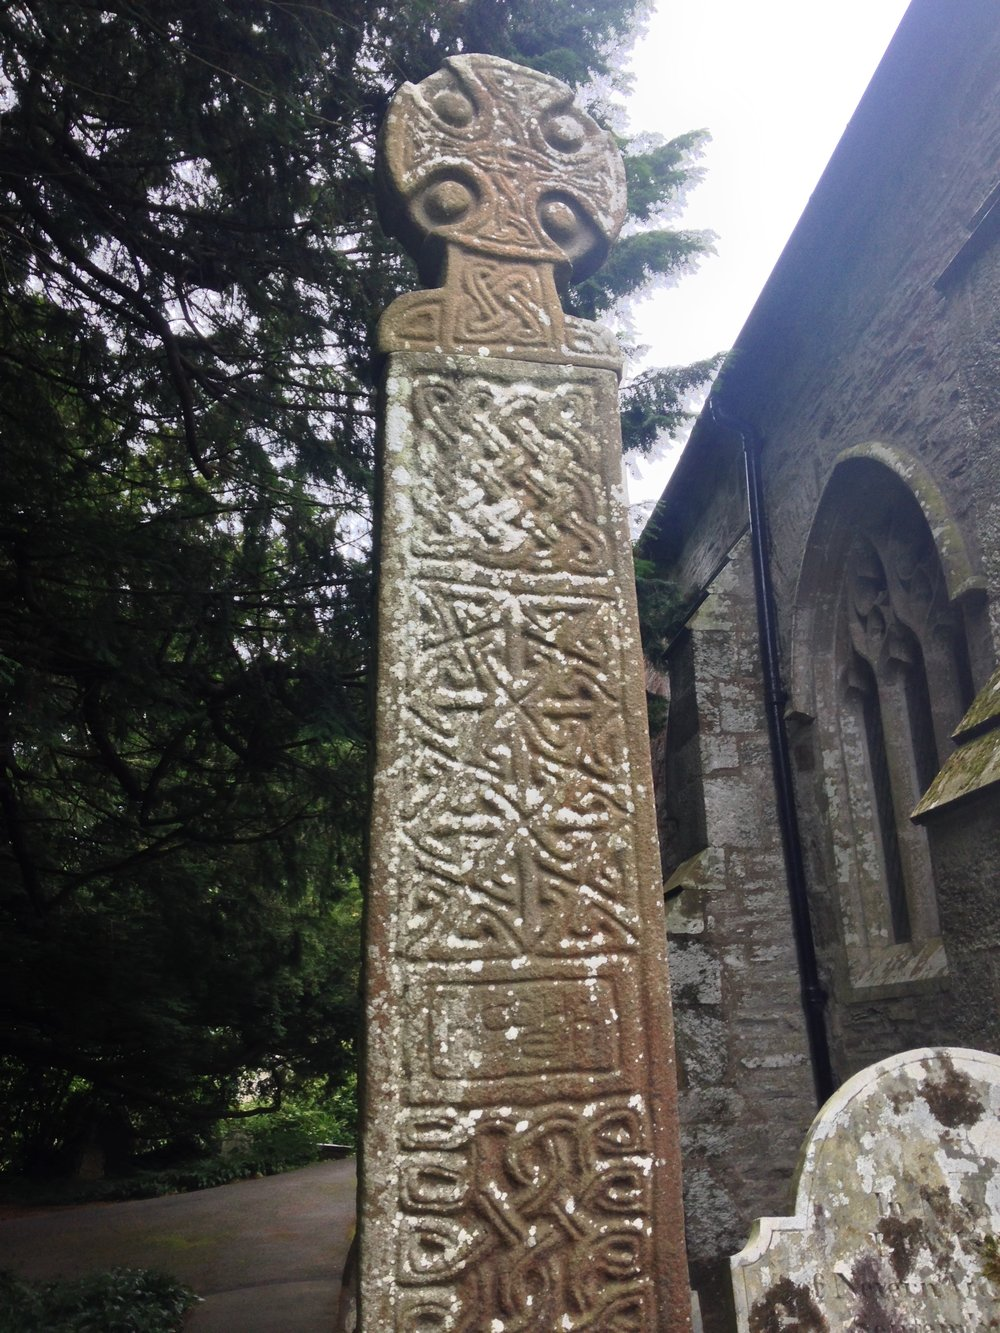 "Nevern Cross from the 10th or 11th century. The current church next to it was built built during Norman times, on top of the church founded by St Brynach in the 6th century. The mysterious ""Bleeding Yew"" Tree in the churchyard is a holy site of the Welsh goddess Cerridwen."